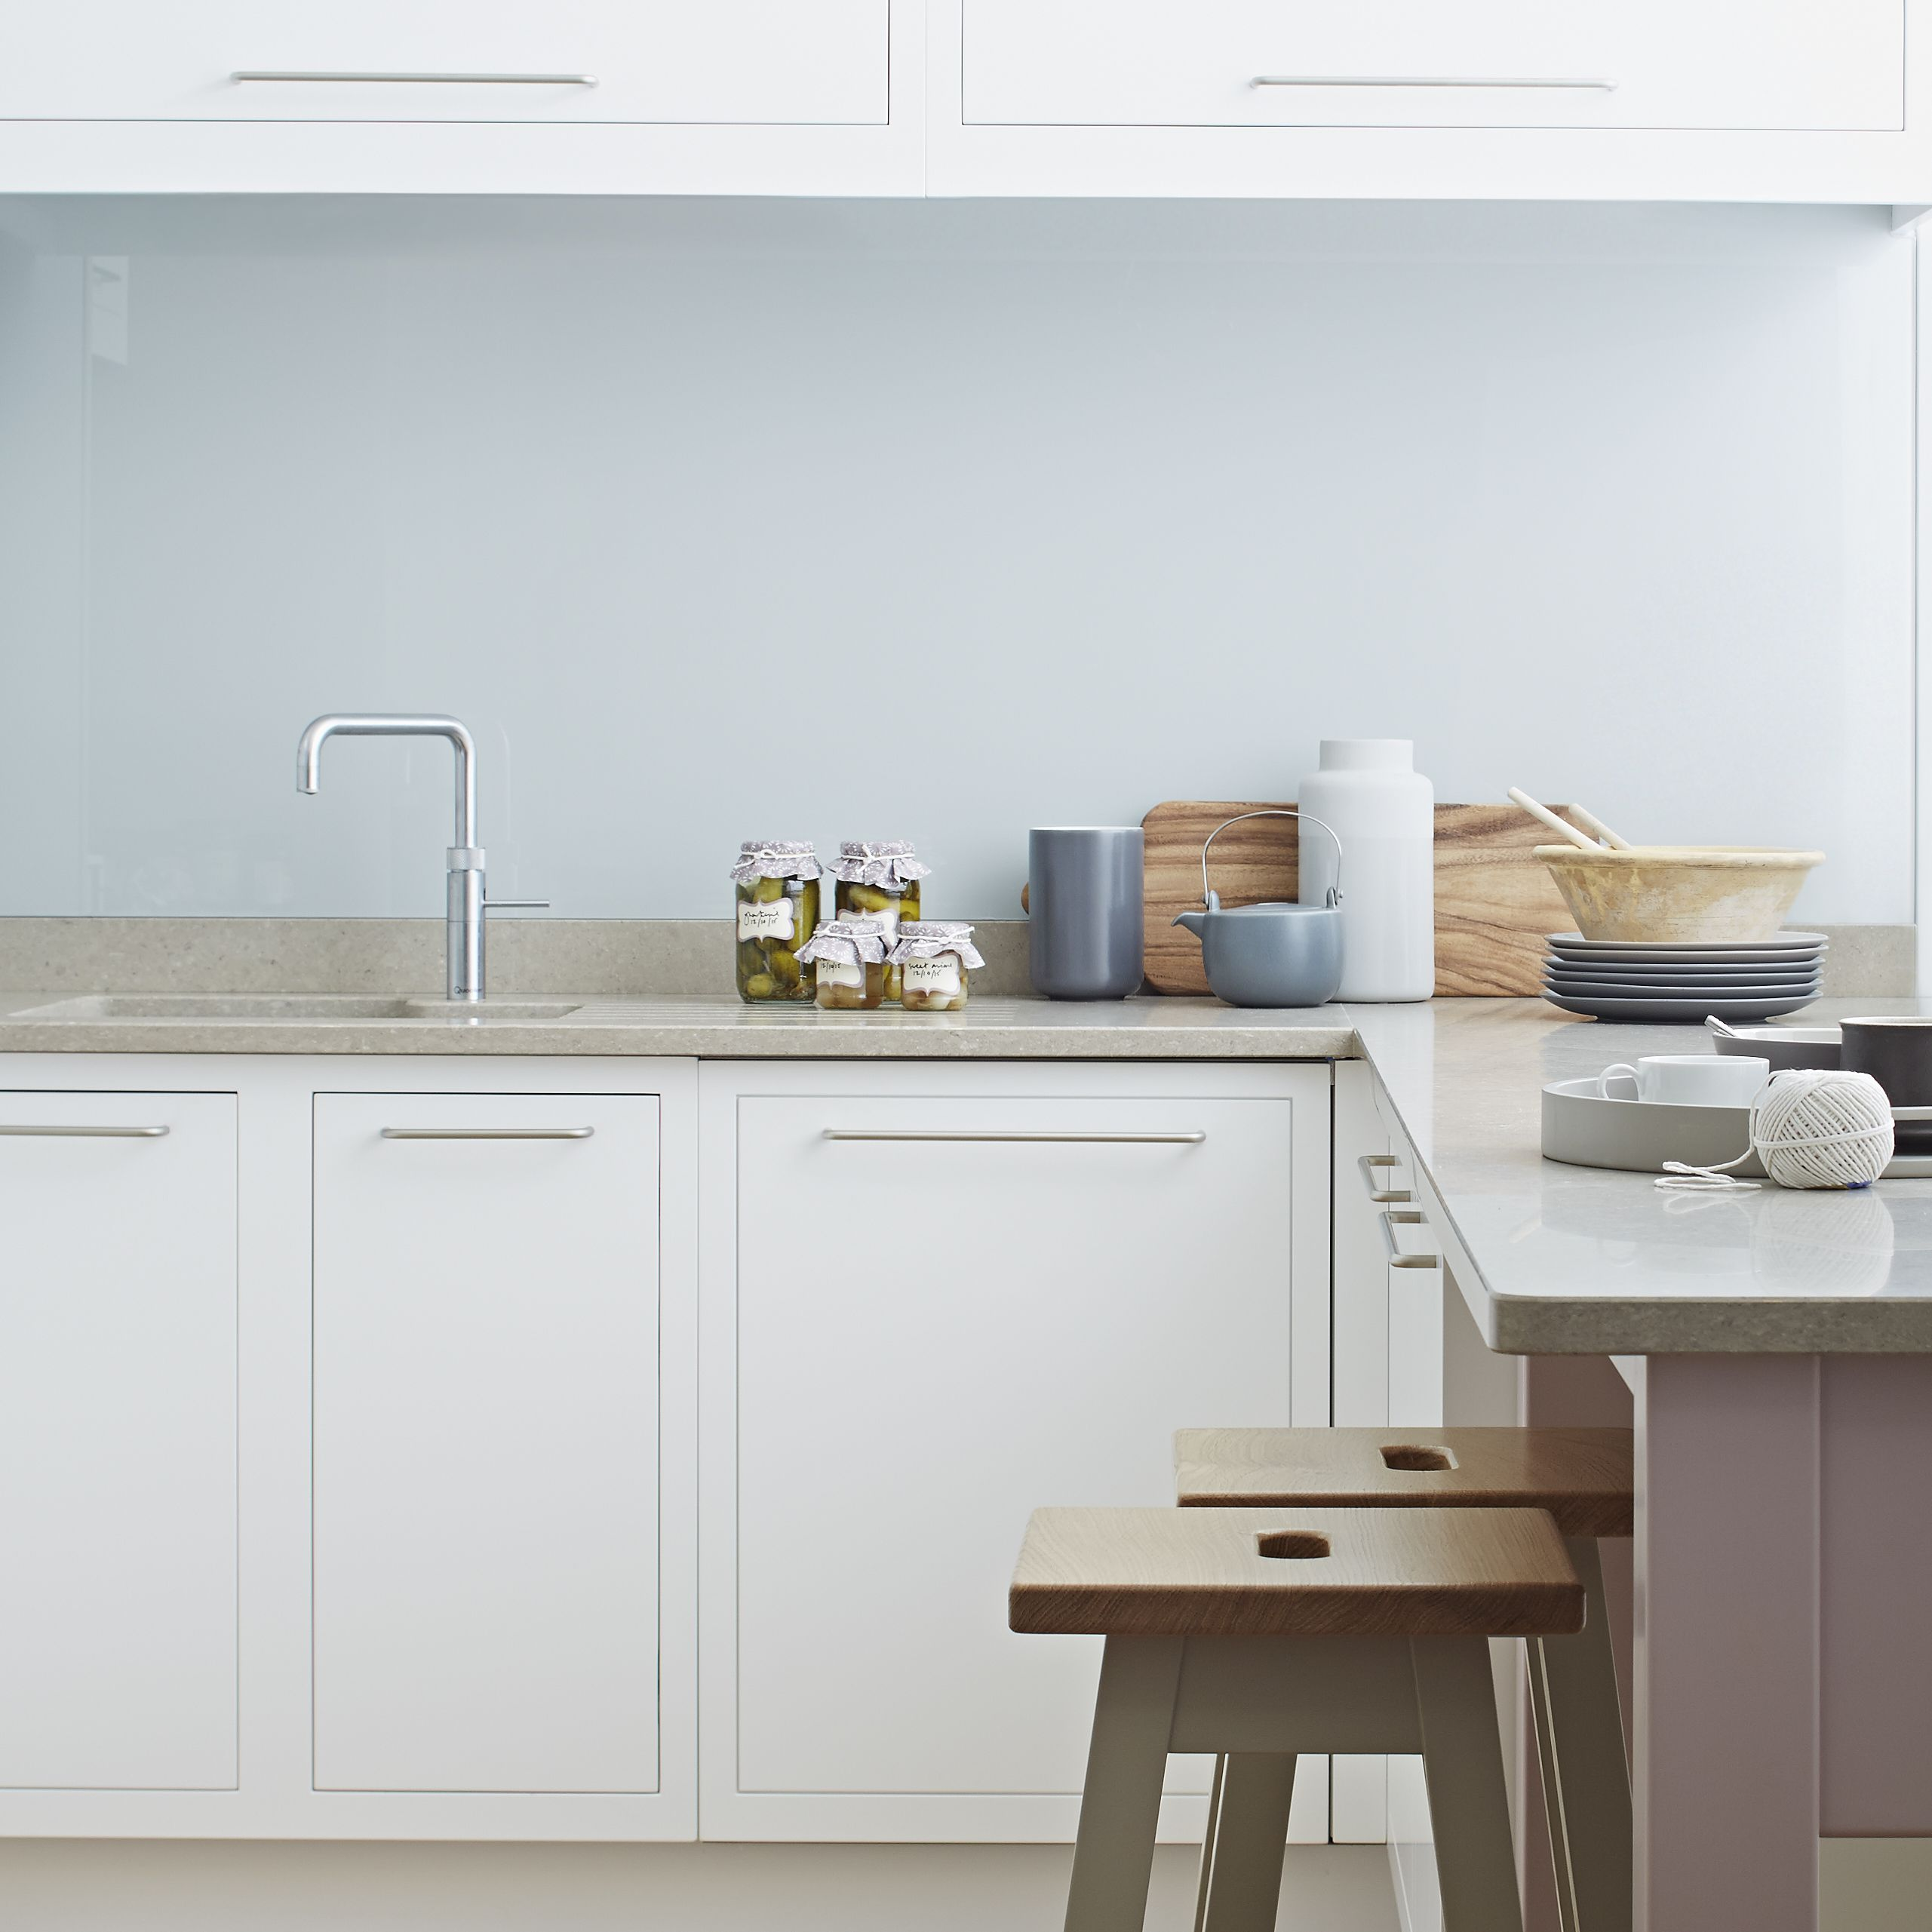 Simple design with understand skinny handles - Urban kitchen from ...